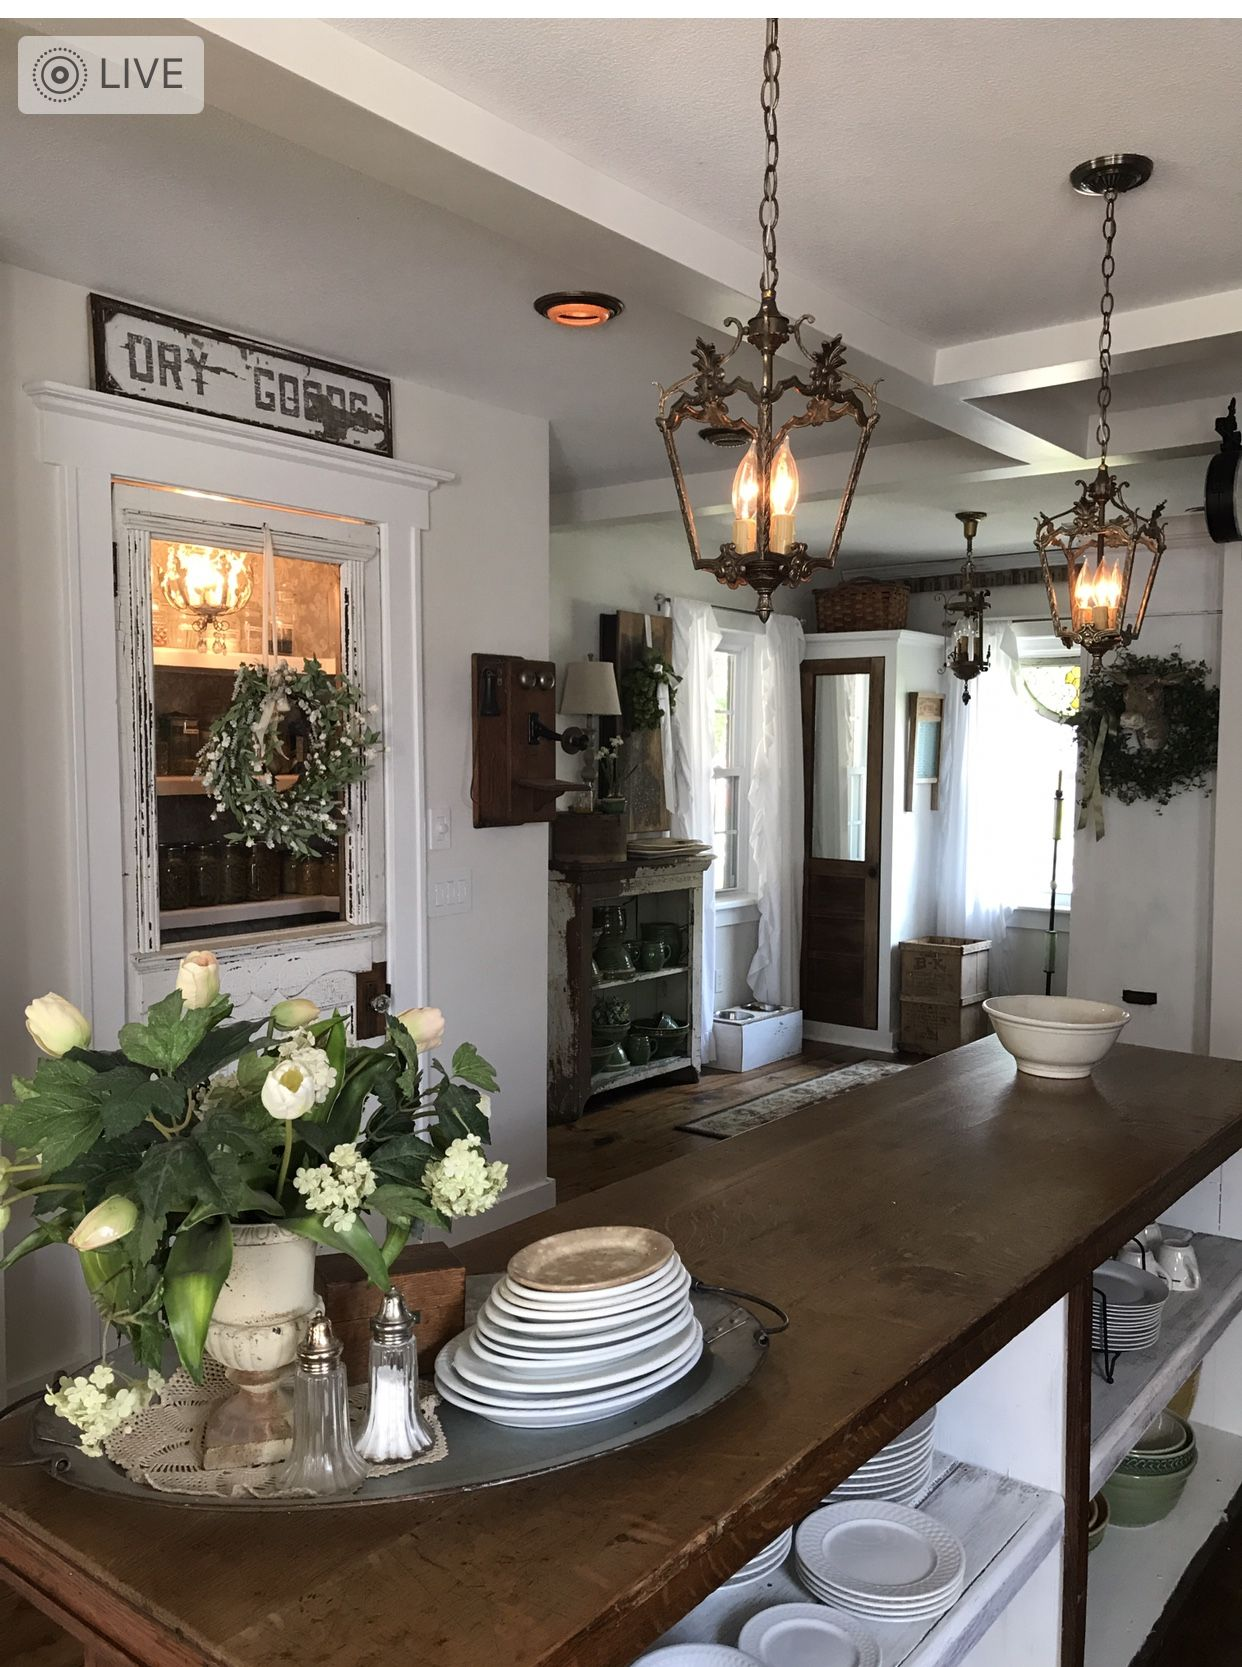 White chippy pantry door with antique store counter as an island